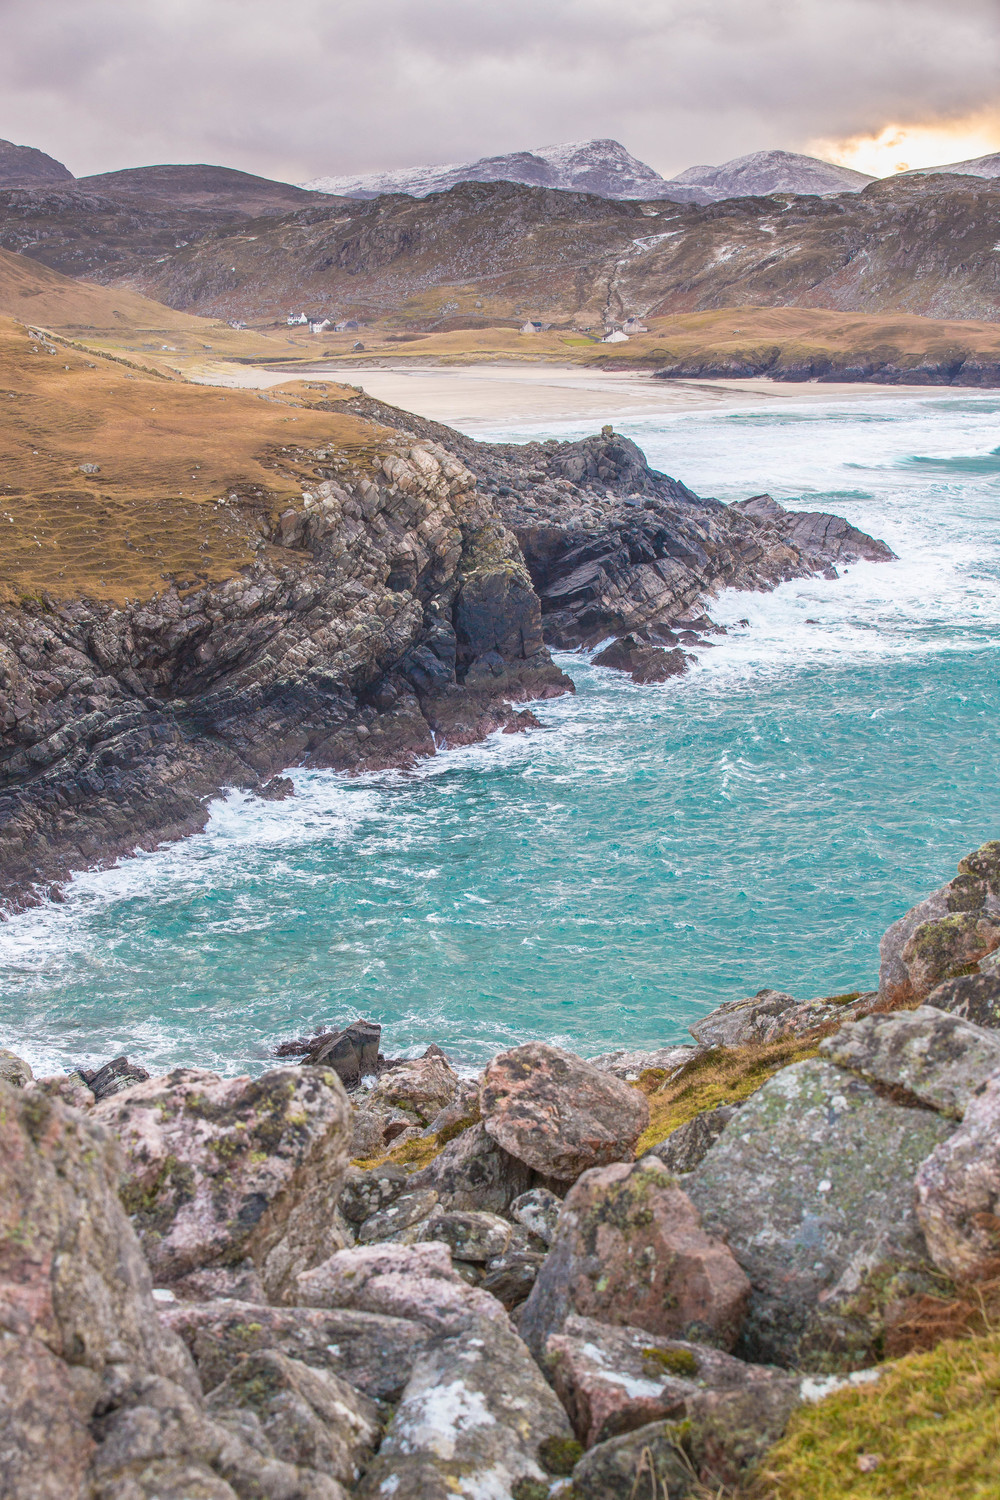 Cliof Beach, Isle of Lewis